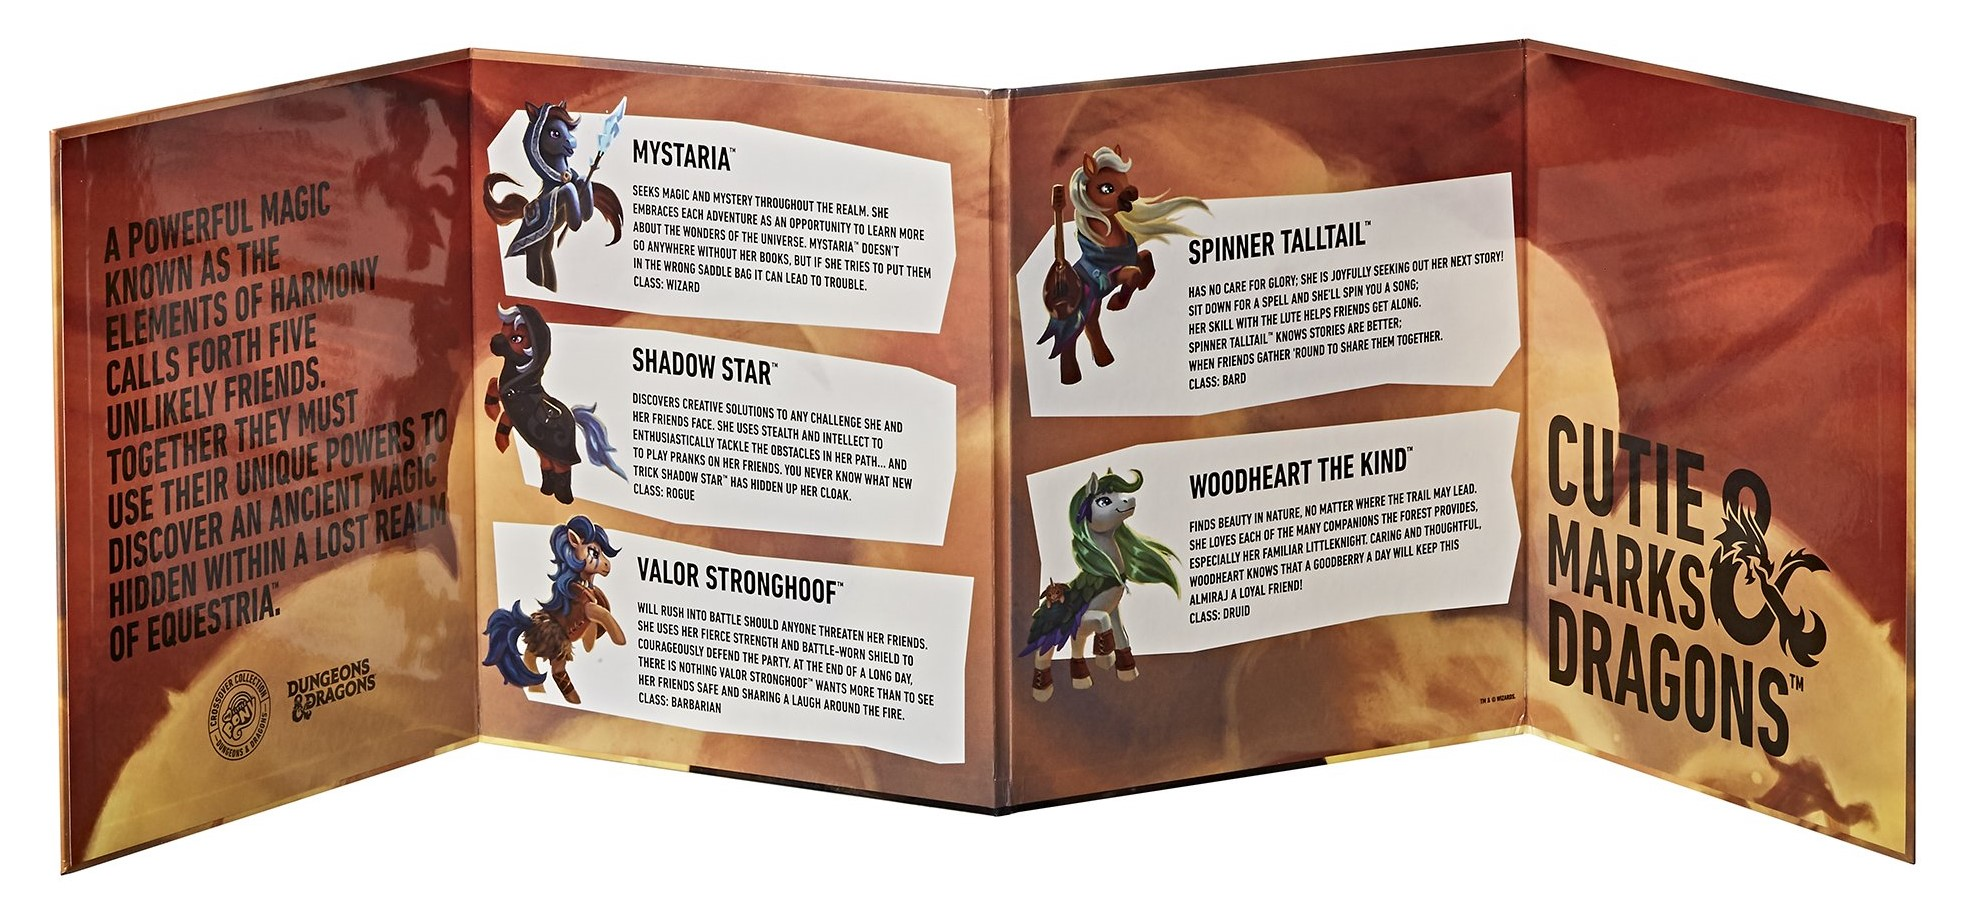 My Little Pony and Dungeons & Dragons collab for a set of crossover figures 12